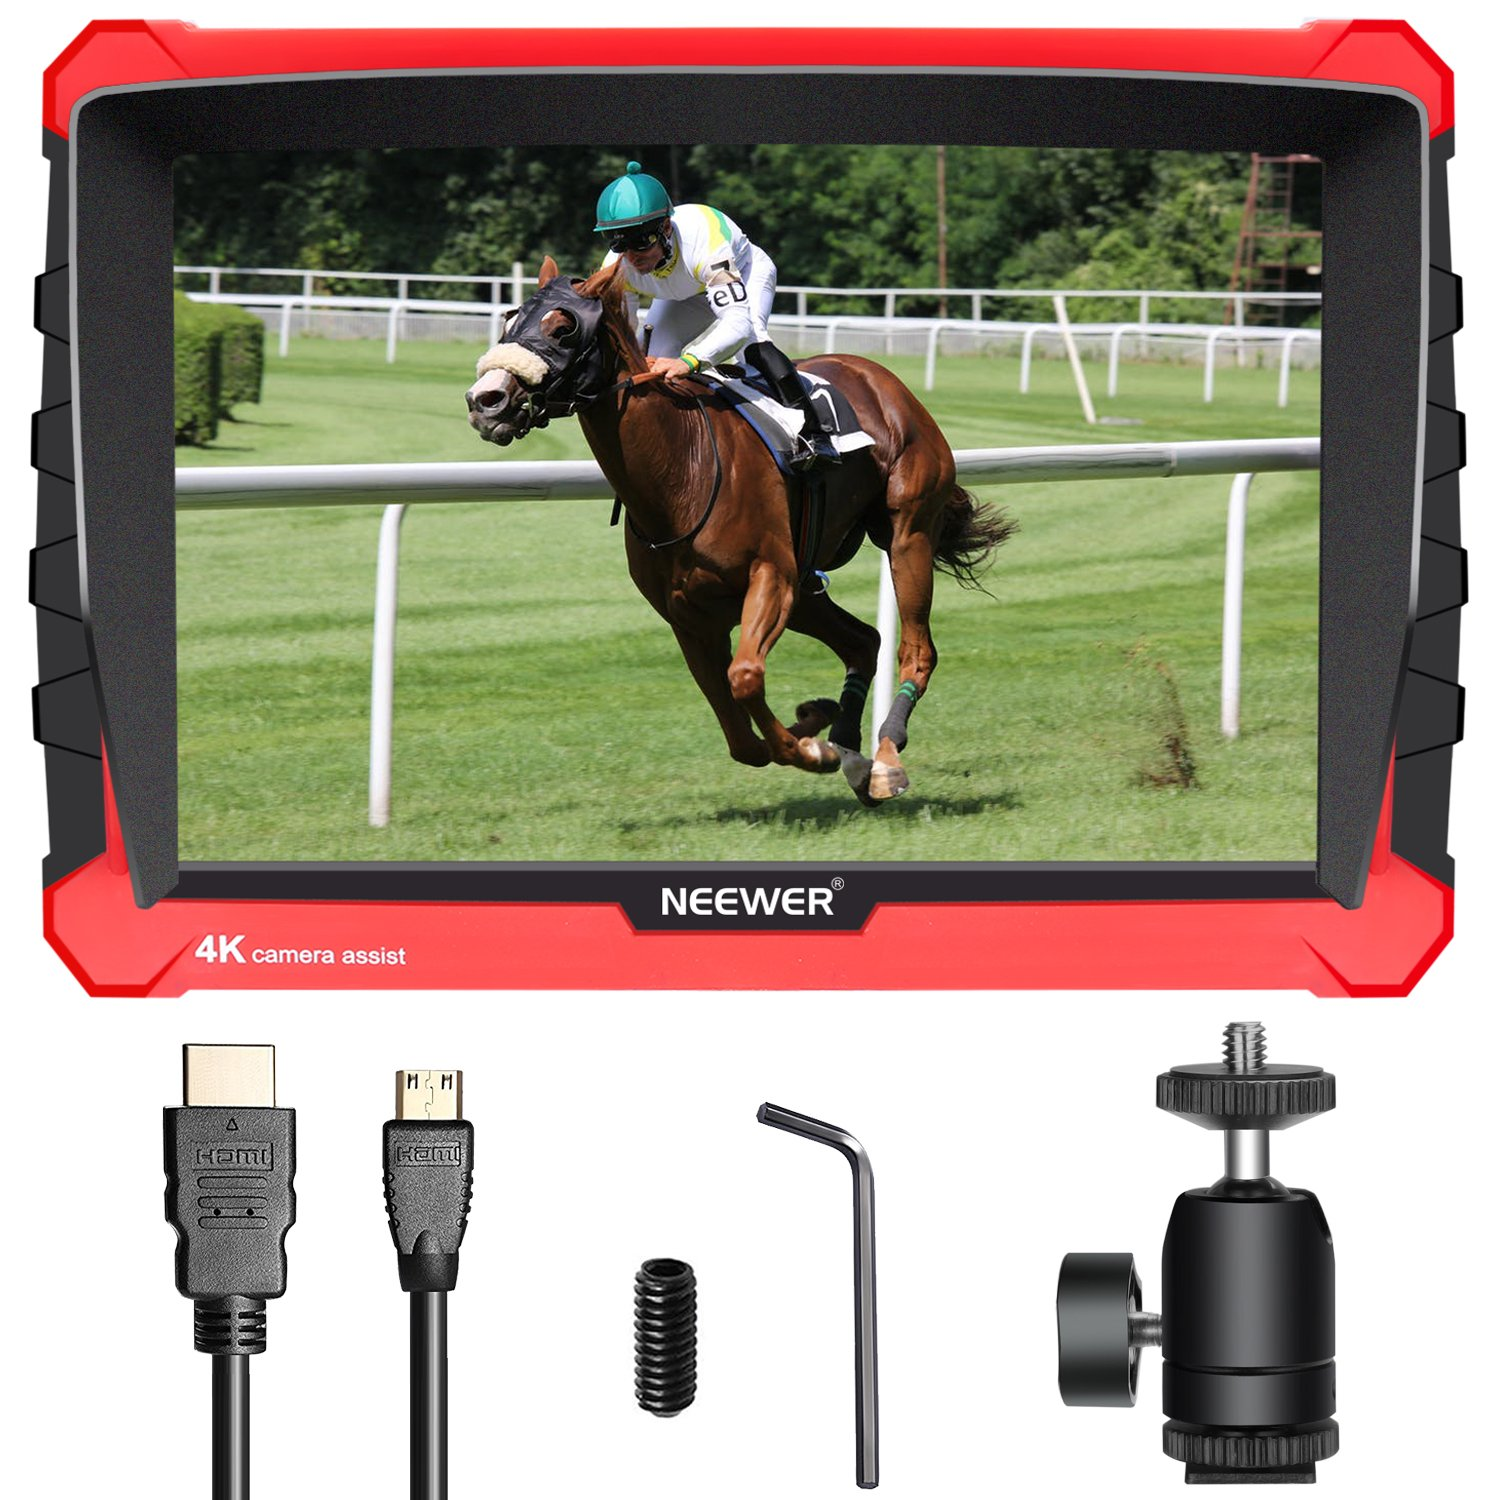 Neewer NW-A7S Camera Field Monitor with Silicone Case: 7-inch 4K 1920x1200 IPS Screen, HDMI Input/Output 16:10 or 4:3 Adjustable Display Ratio for Sony Canon Nikon Olympus (Battery Not Included) 10091303